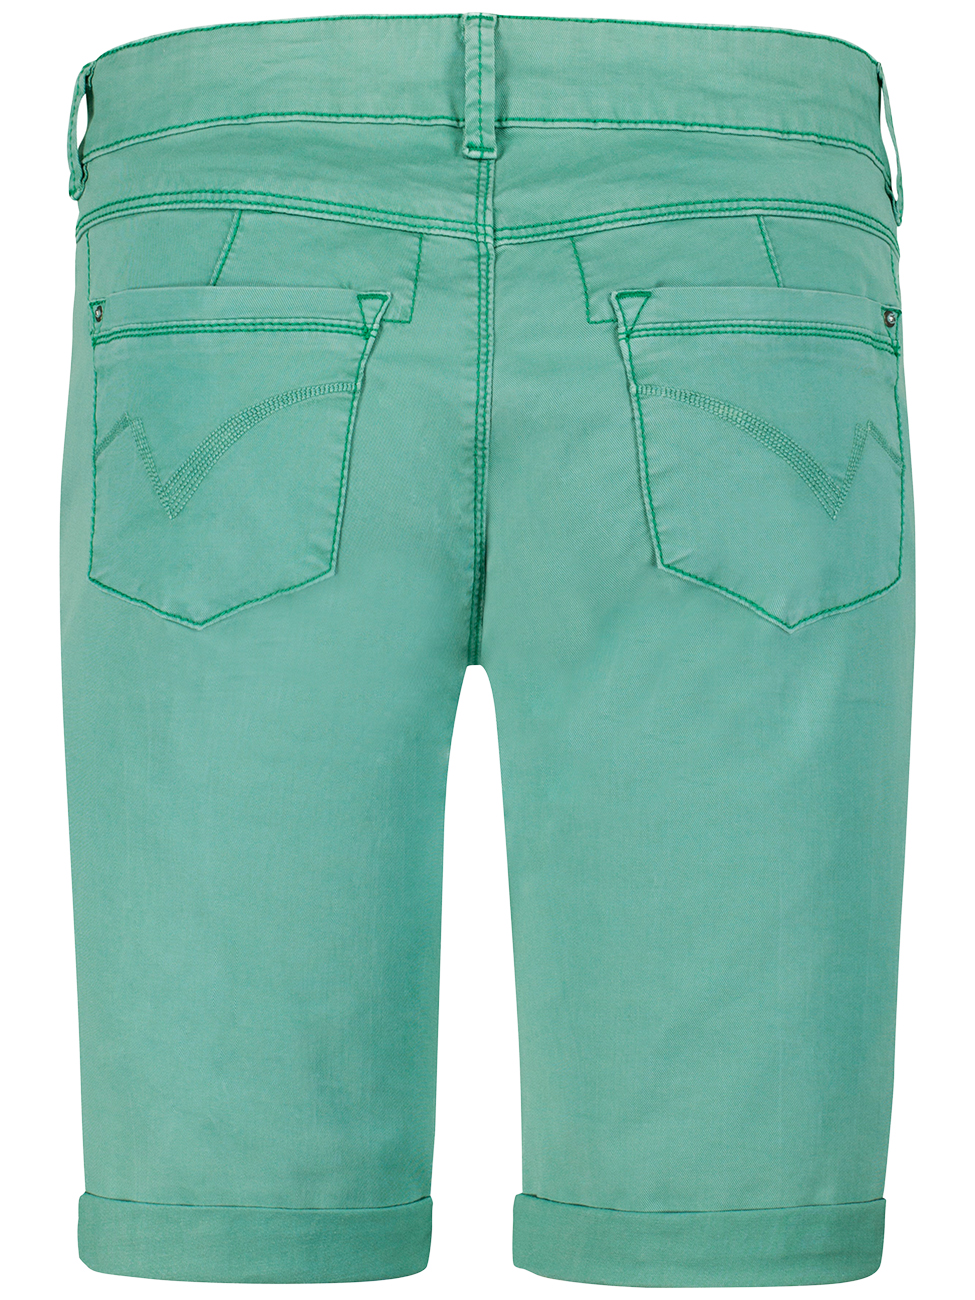 timezone-damen-short-nali-slim-fit